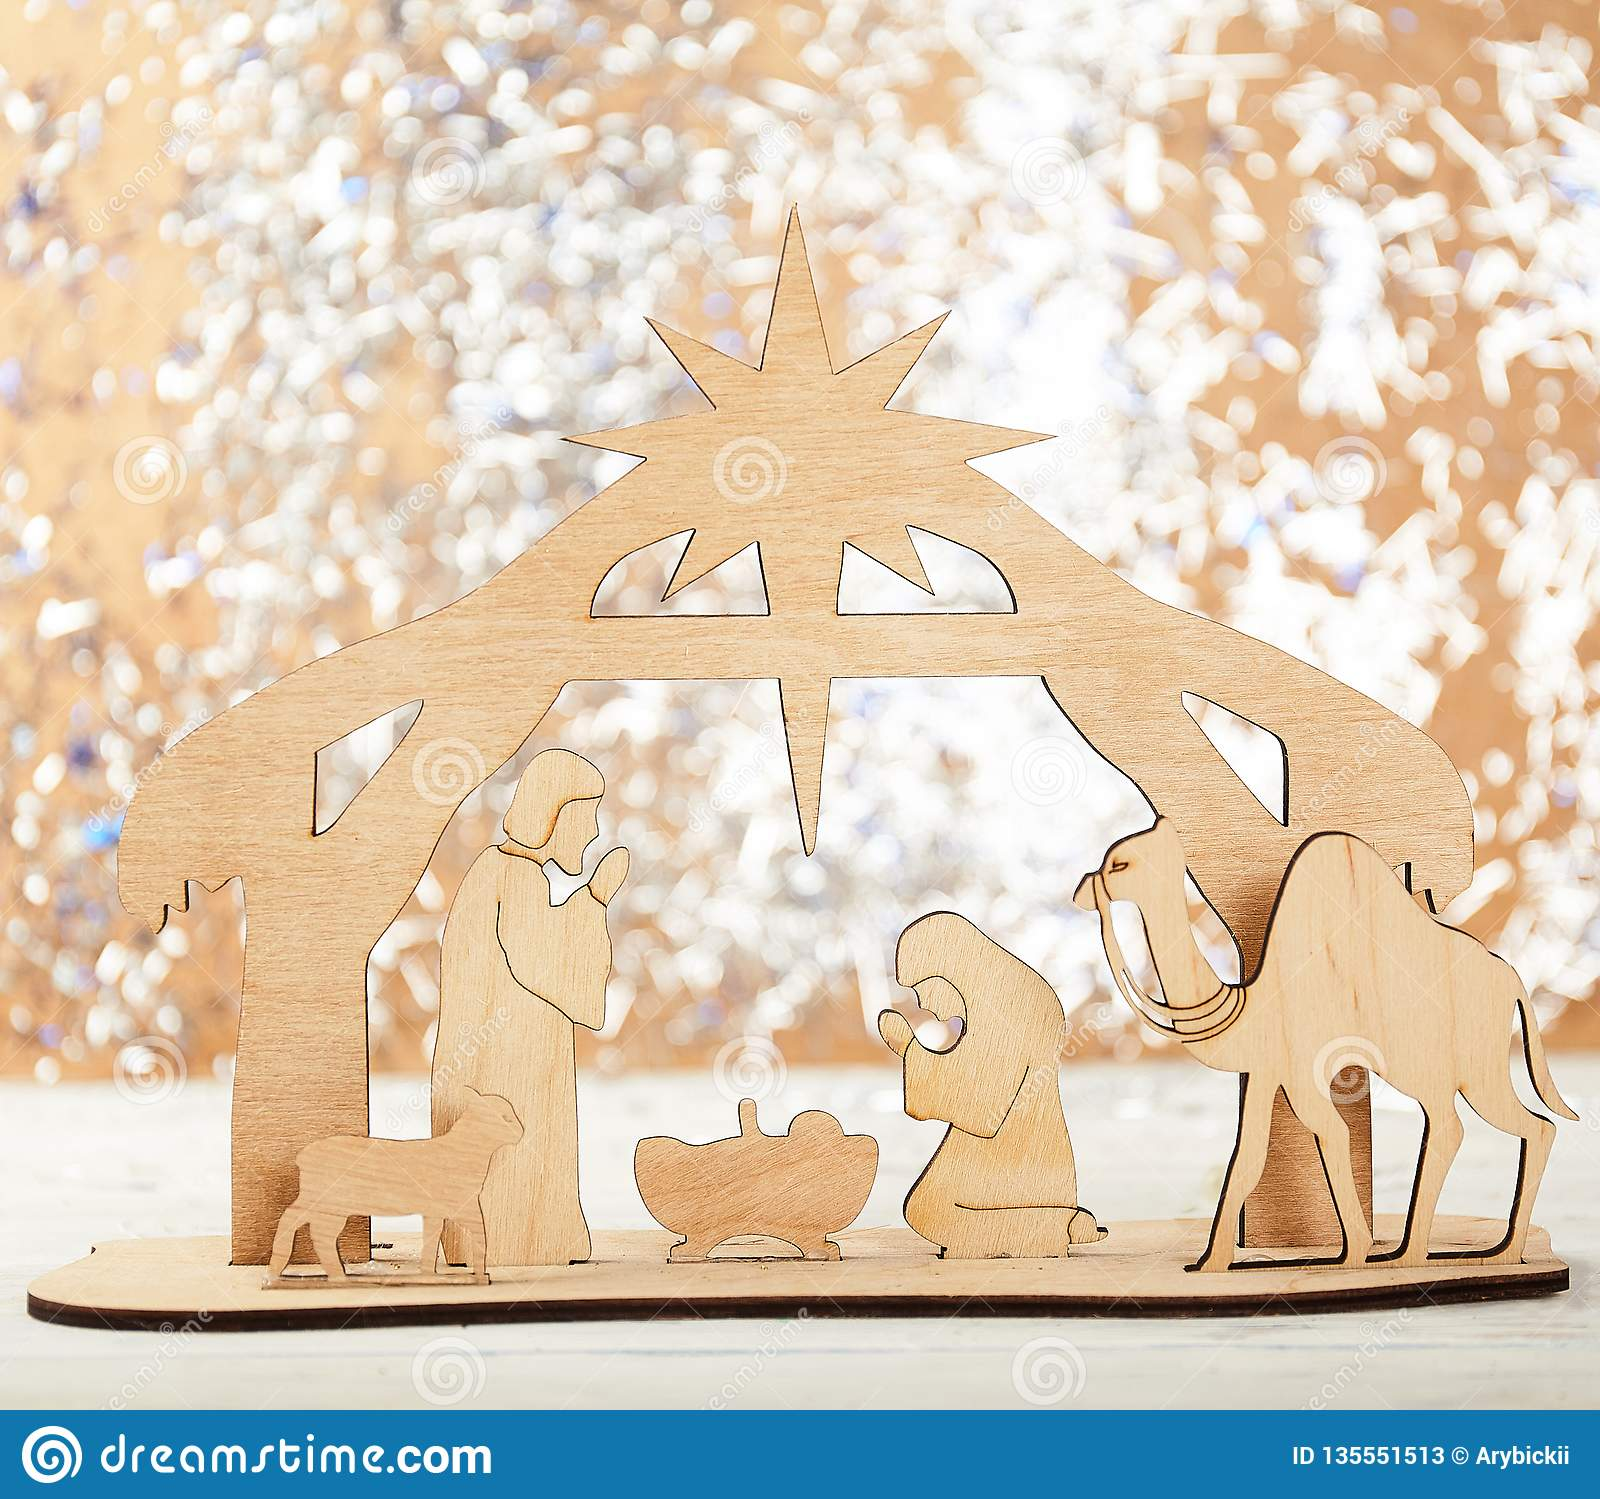 Christmas Nativity Scene of baby Jesus in the manger with Mary and Joseph